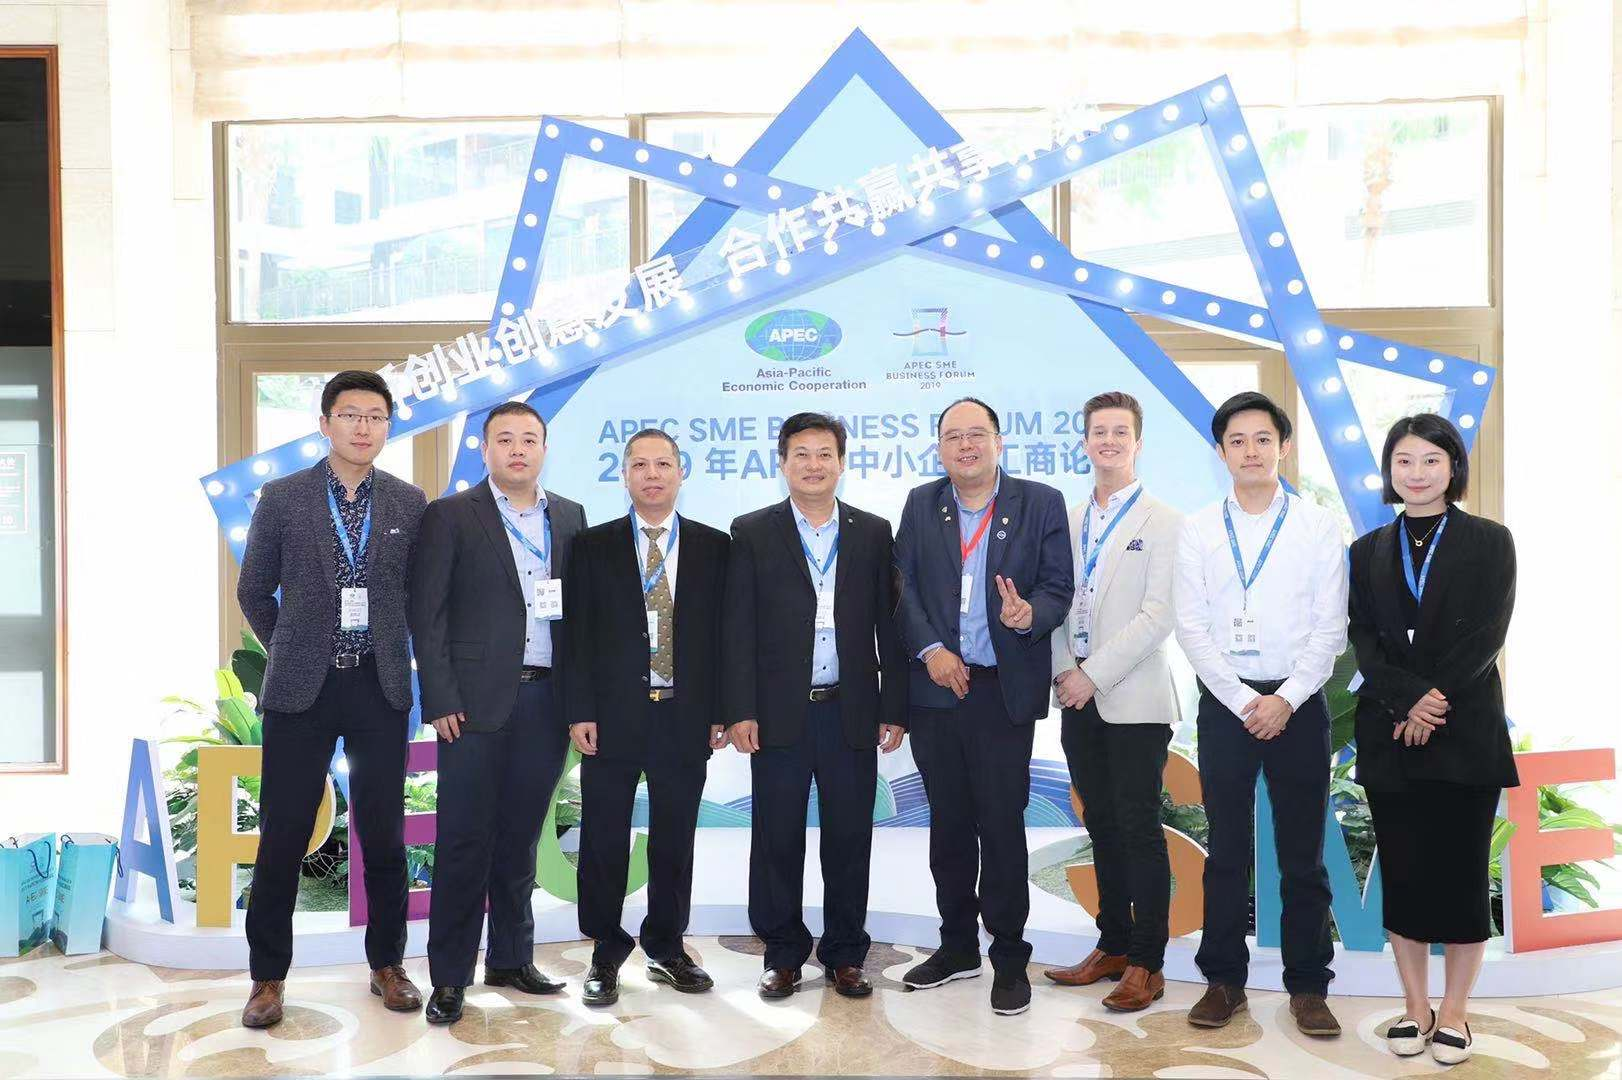 The 2019 APEC SME Business Forum has been successfully held in Shenzhen last December.